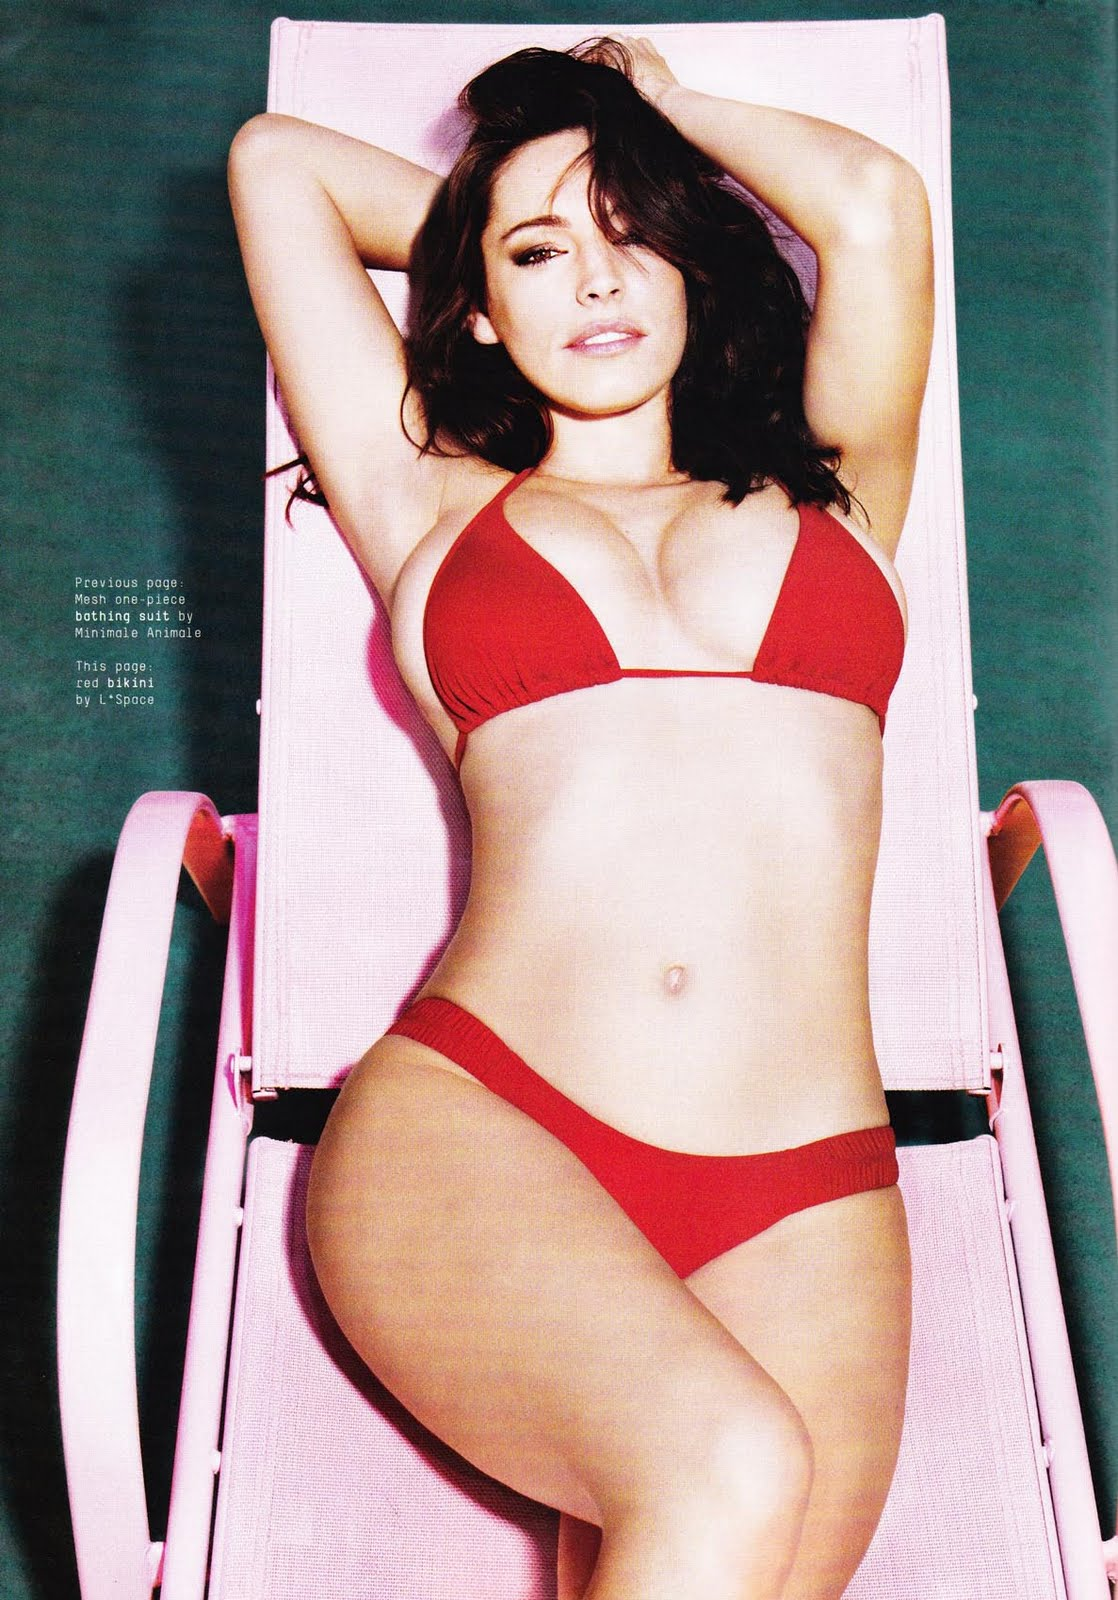 http://4.bp.blogspot.com/-JoKbbFPmJlM/TdZlffYOArI/AAAAAAAAZYI/mX2FExh71BY/s1600/kelly_brook_esquire_red_6.jpg